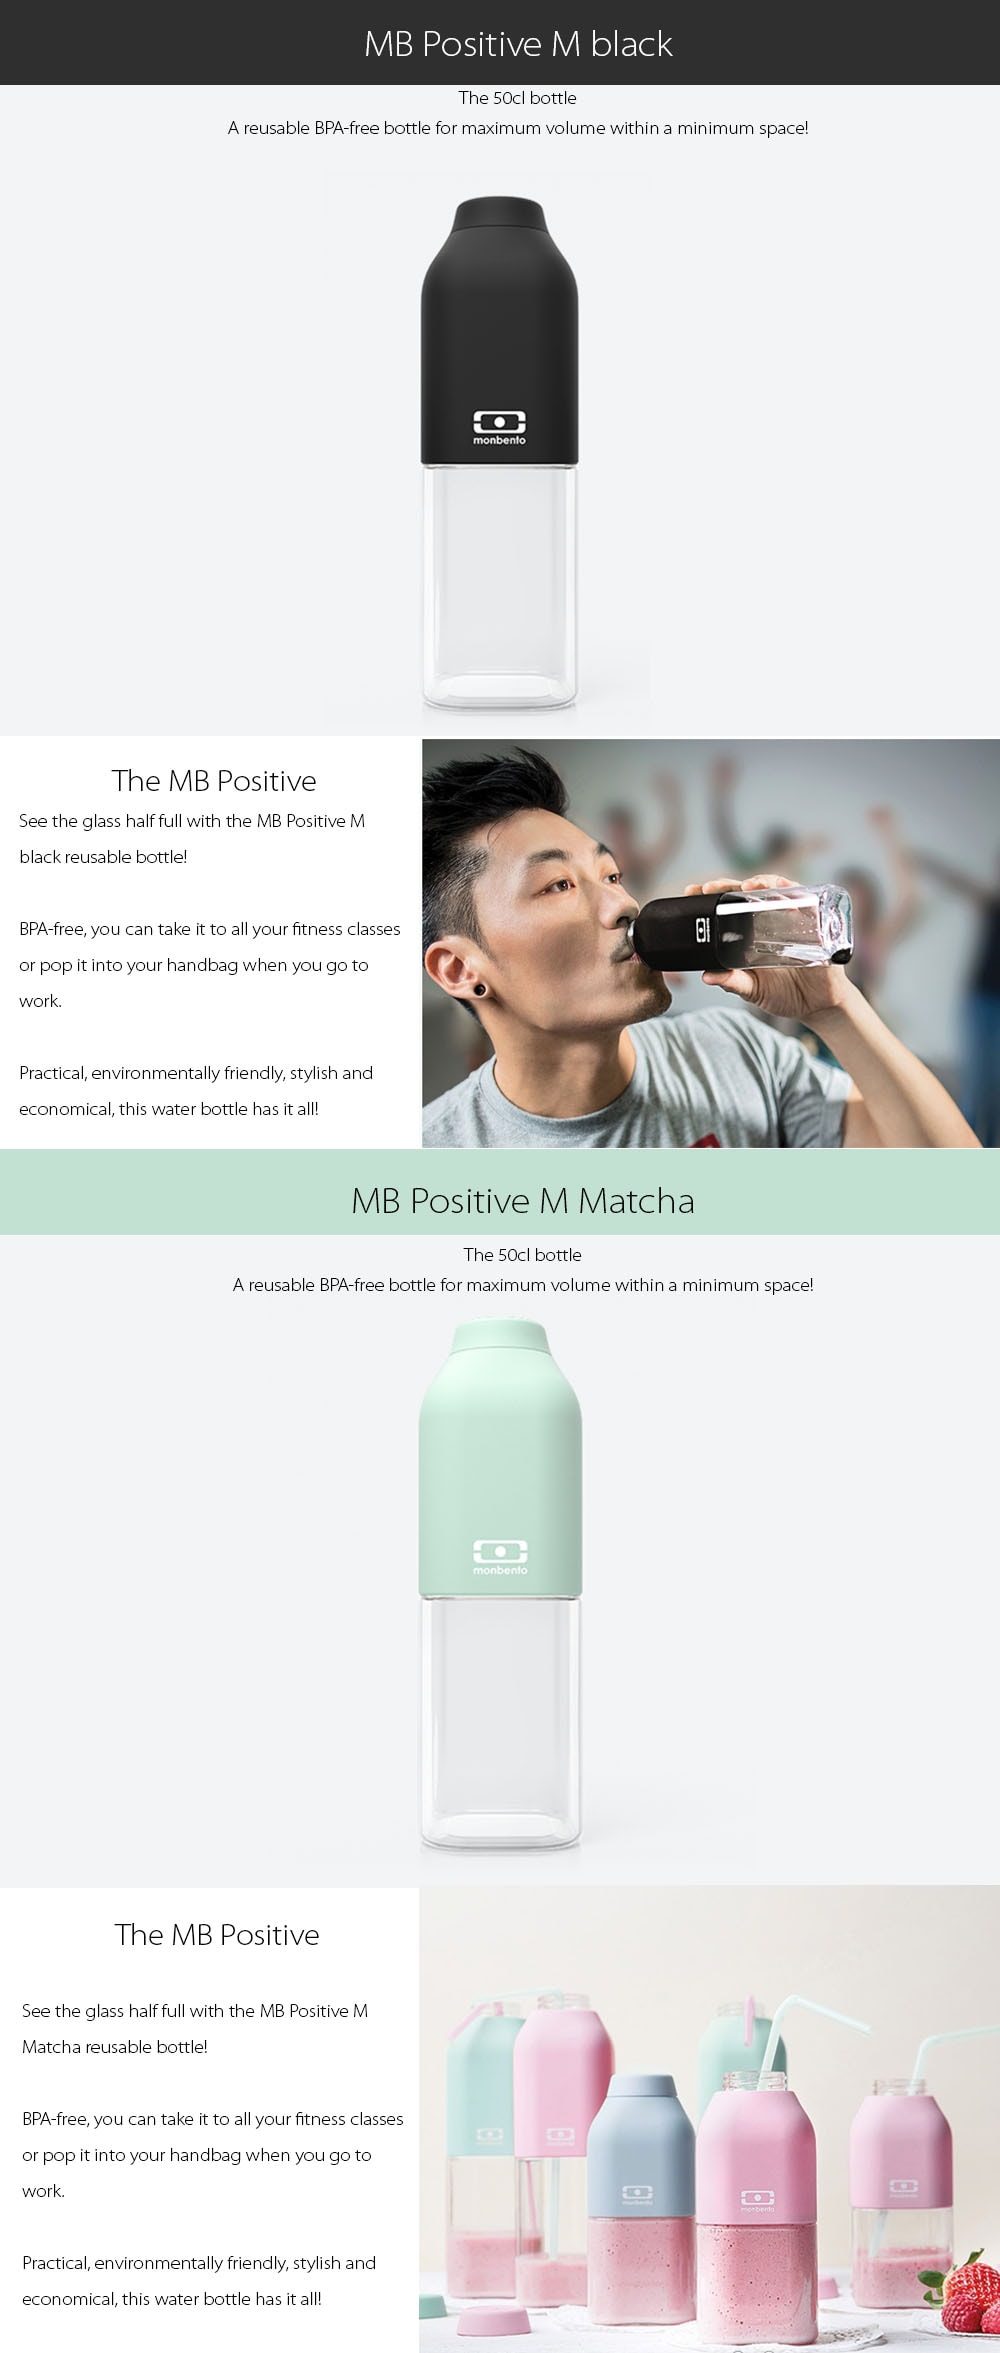 MB Positive 50cl Bottle A reusable BPA-free bottle